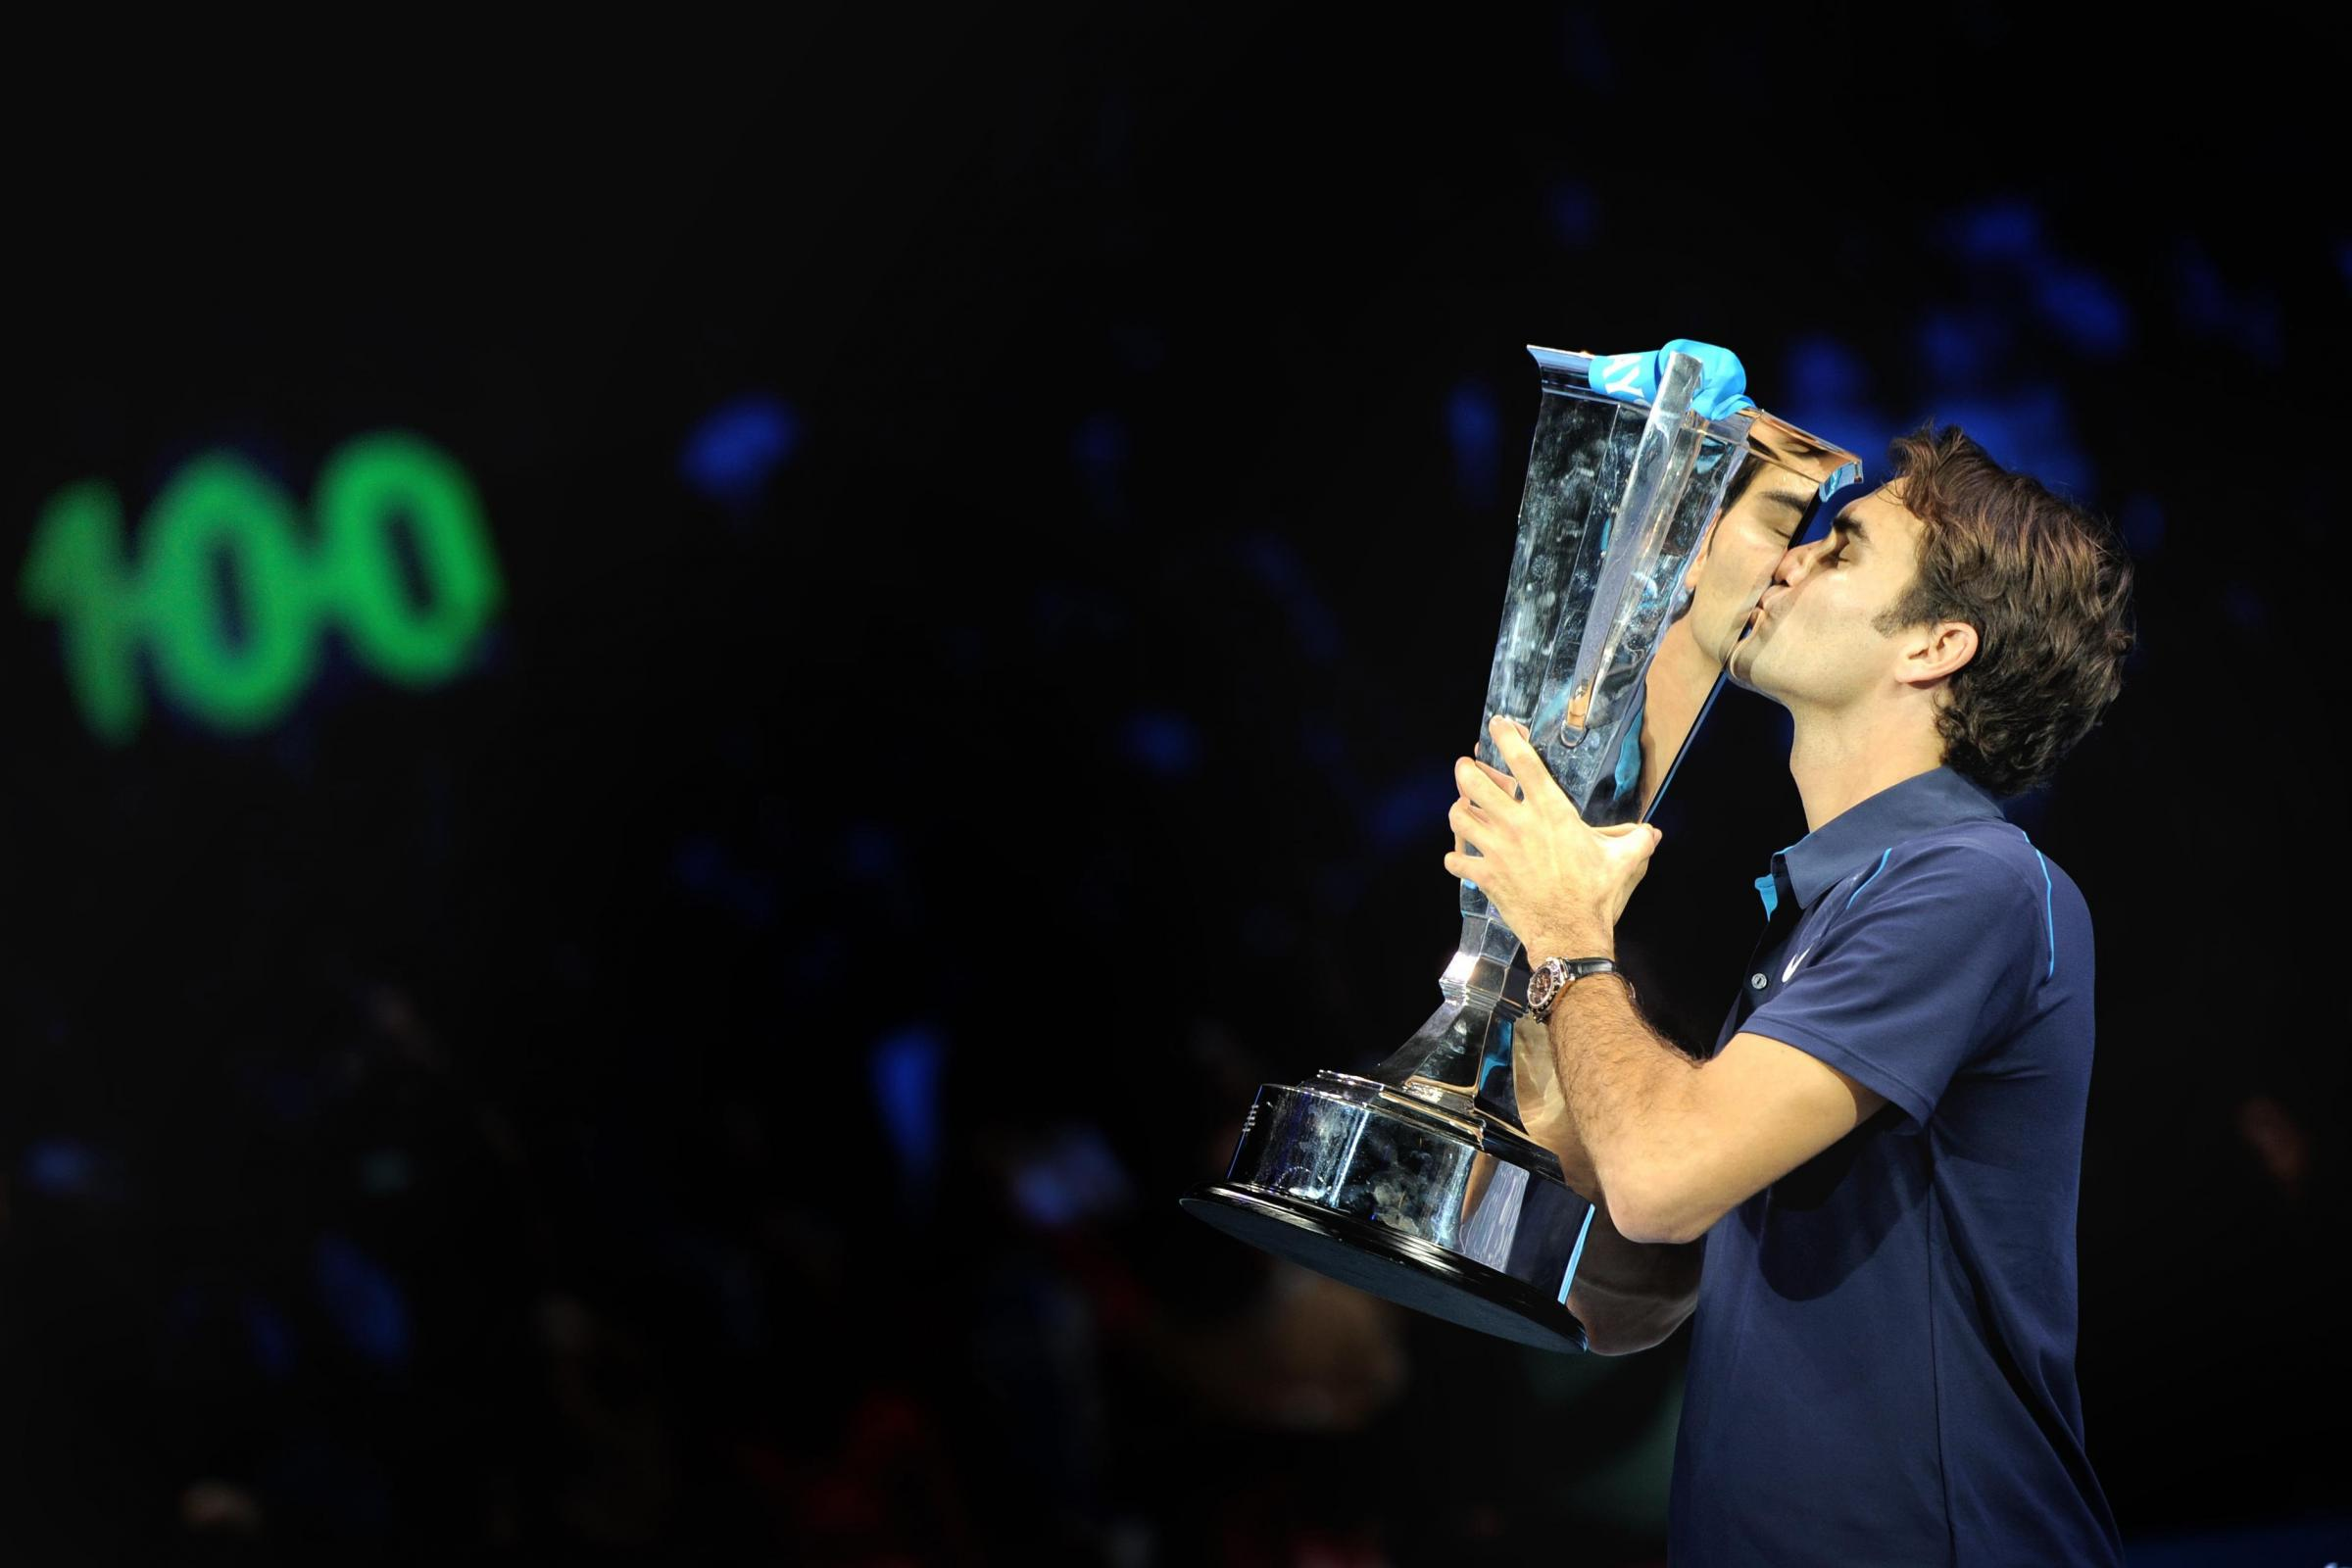 Roger Federer is bidding for his 100th singles title at the ATP Tour Finals in London